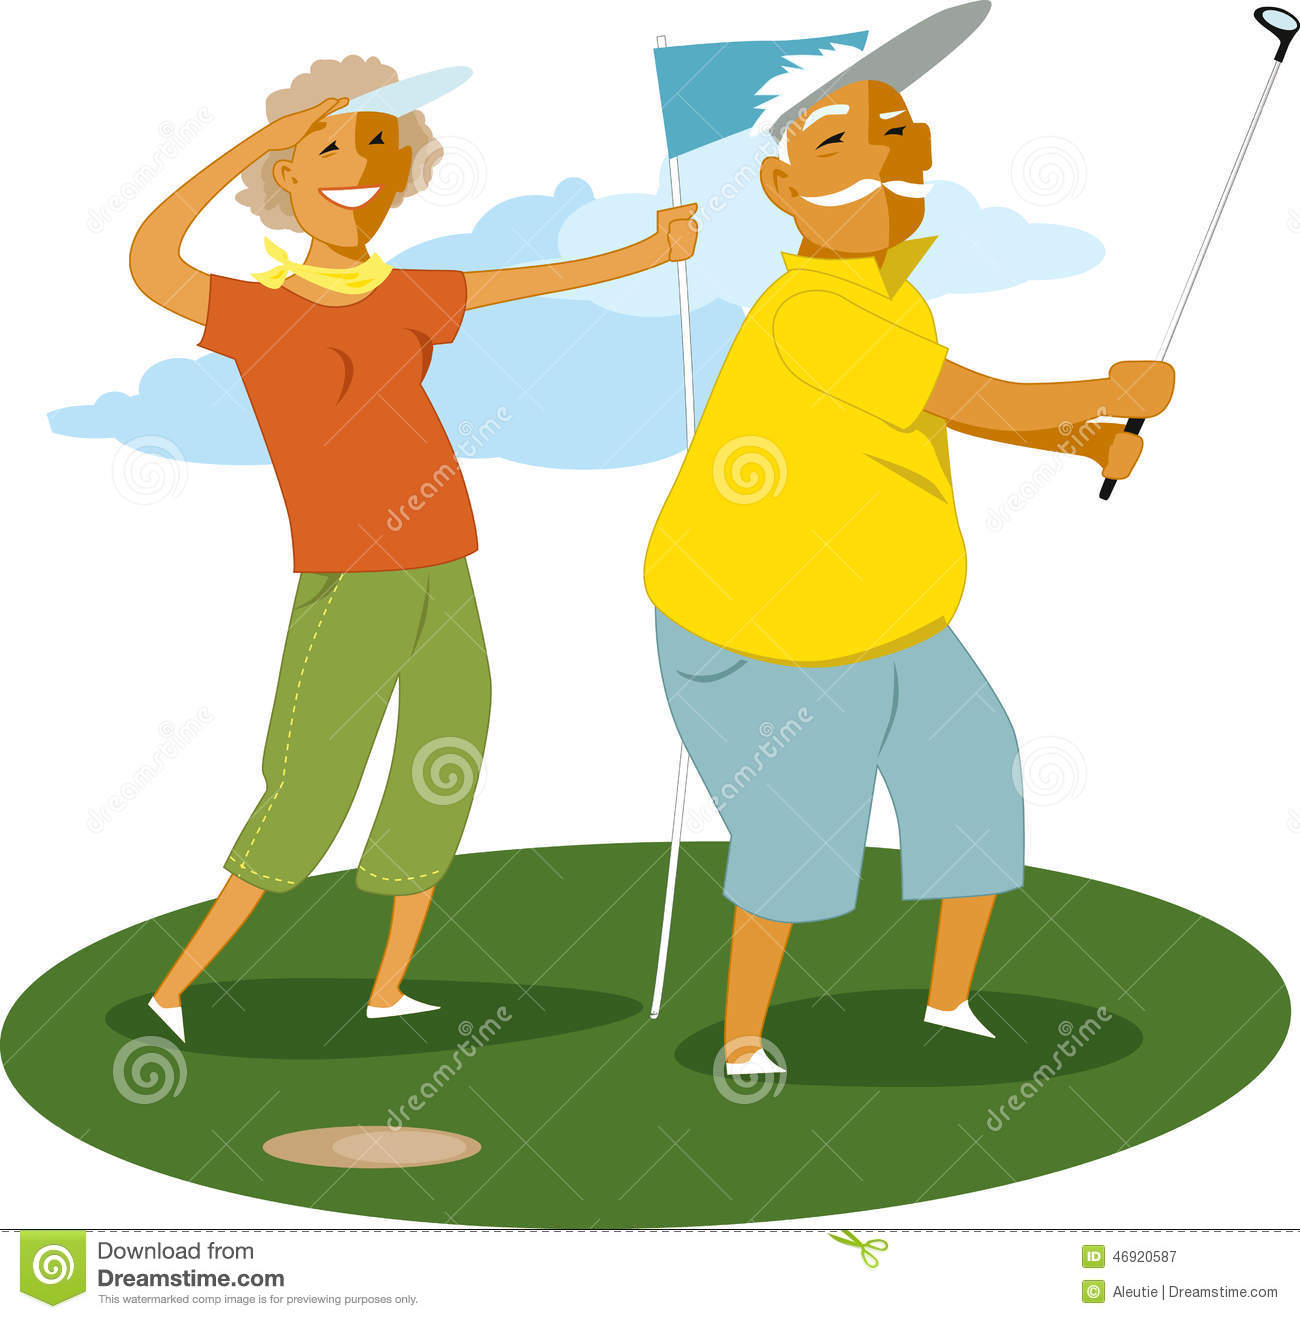 Cartoon pictures of women golfers 40 Different Types Of Fishes In World and Their Specialties Styles